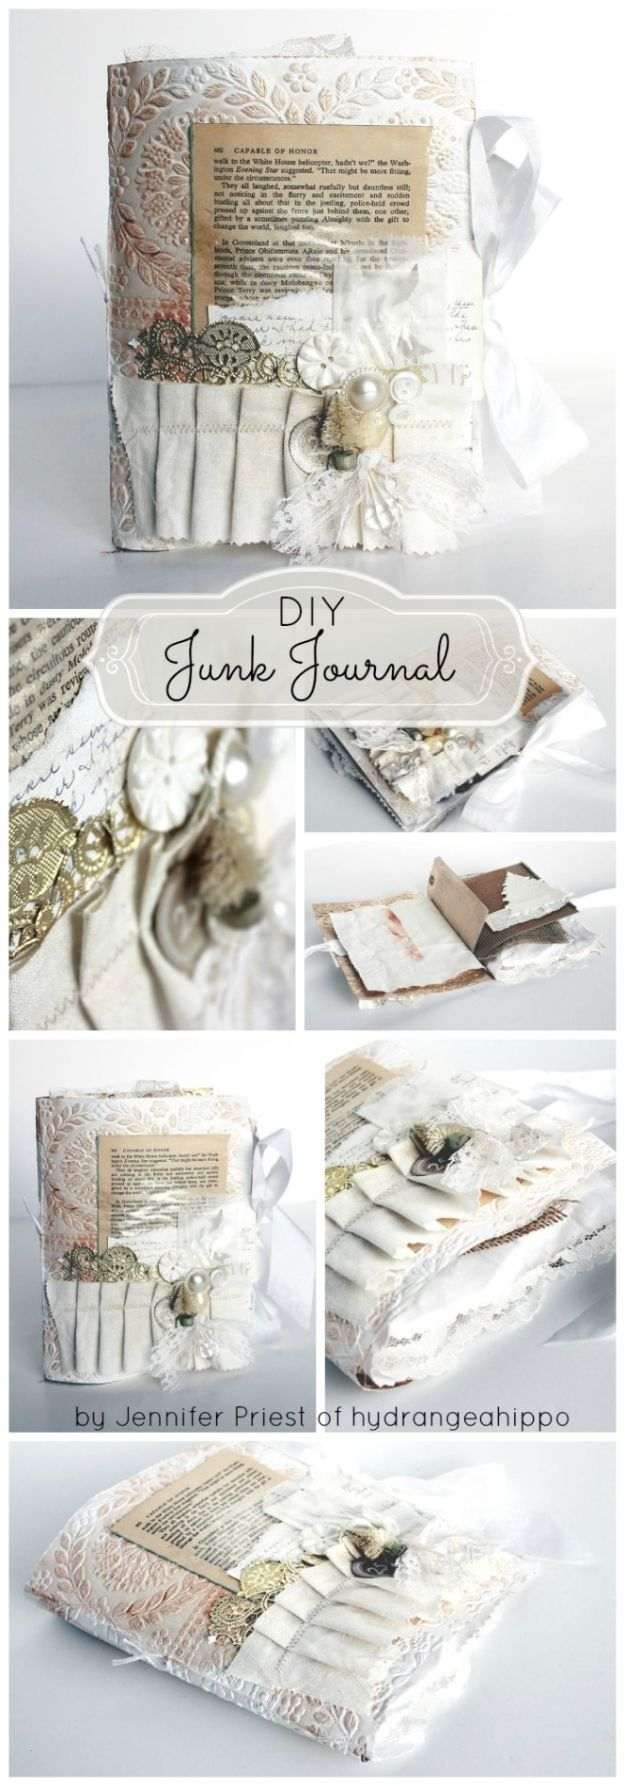 DIY Journals - DIY Junk Journal - Ideas For Making A Handmade Journal - Cover Art Tutorial, Binding Tips, Easy Craft Ideas for Kids and For Teens - Step By Step Instructions for Making From Scratch, From An Old Book - Leather, Faux Marble, Paper, Monogram, Cute Do It Yourself Gift Idea